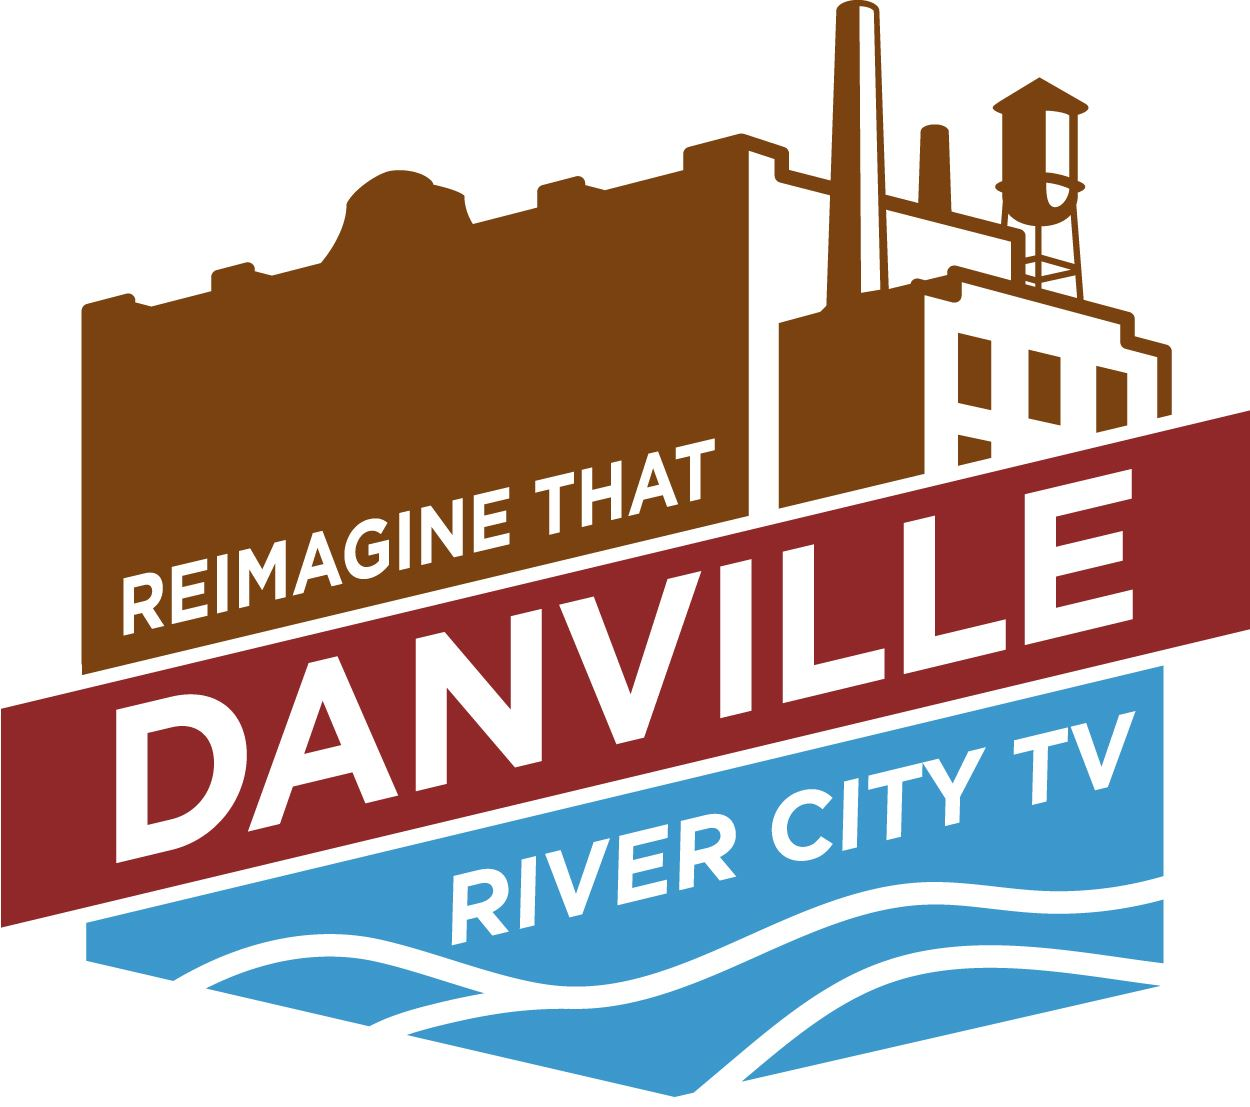 River City TV logo